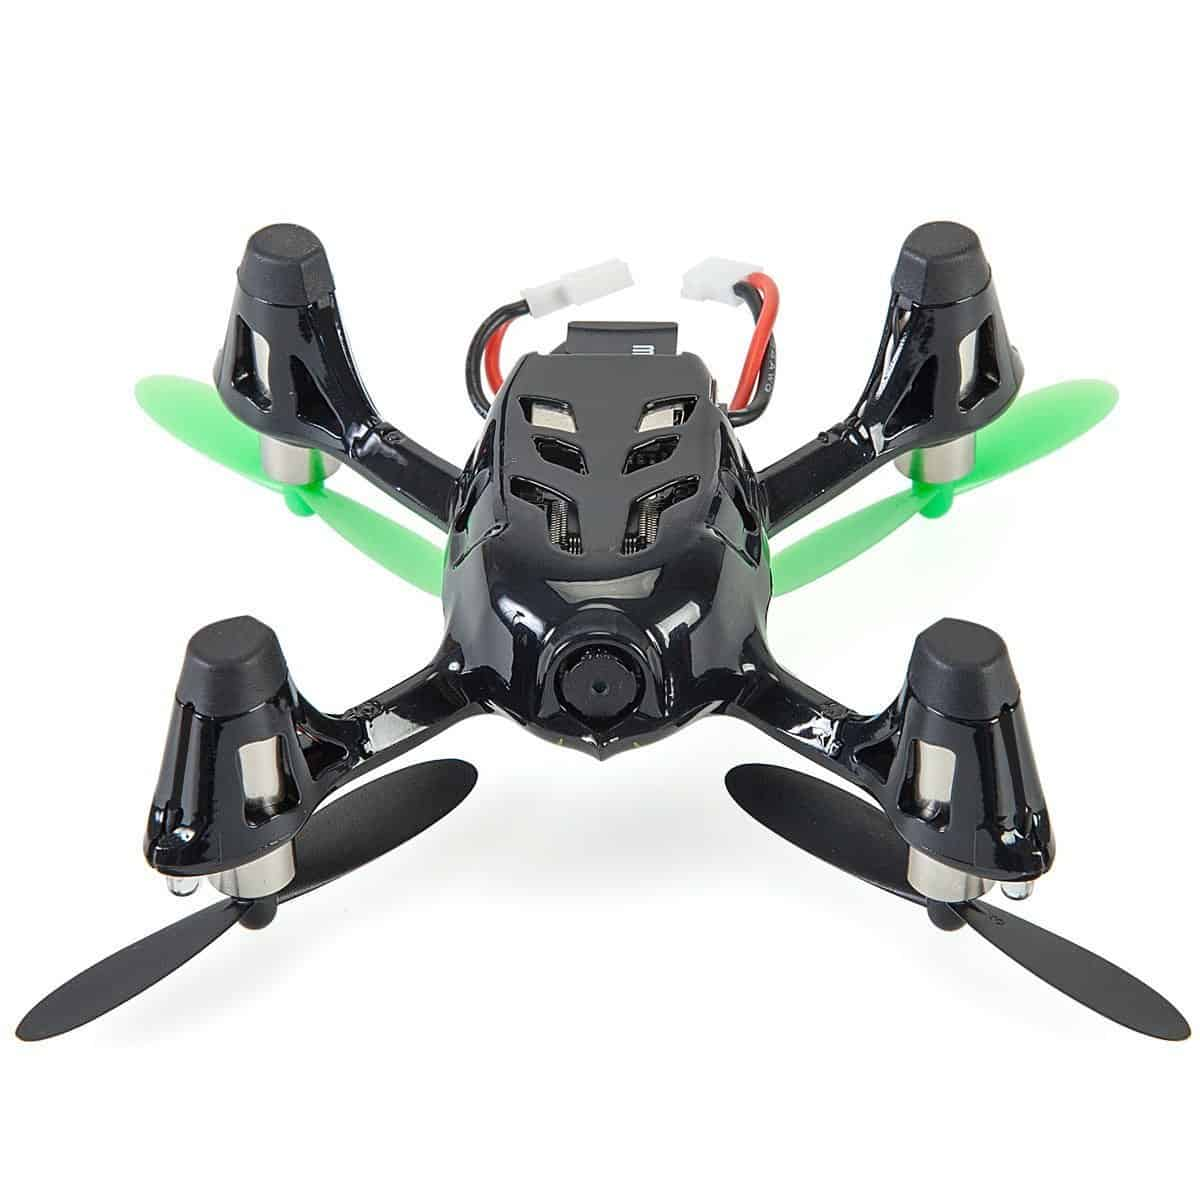 Hubsan X4 H107C build review